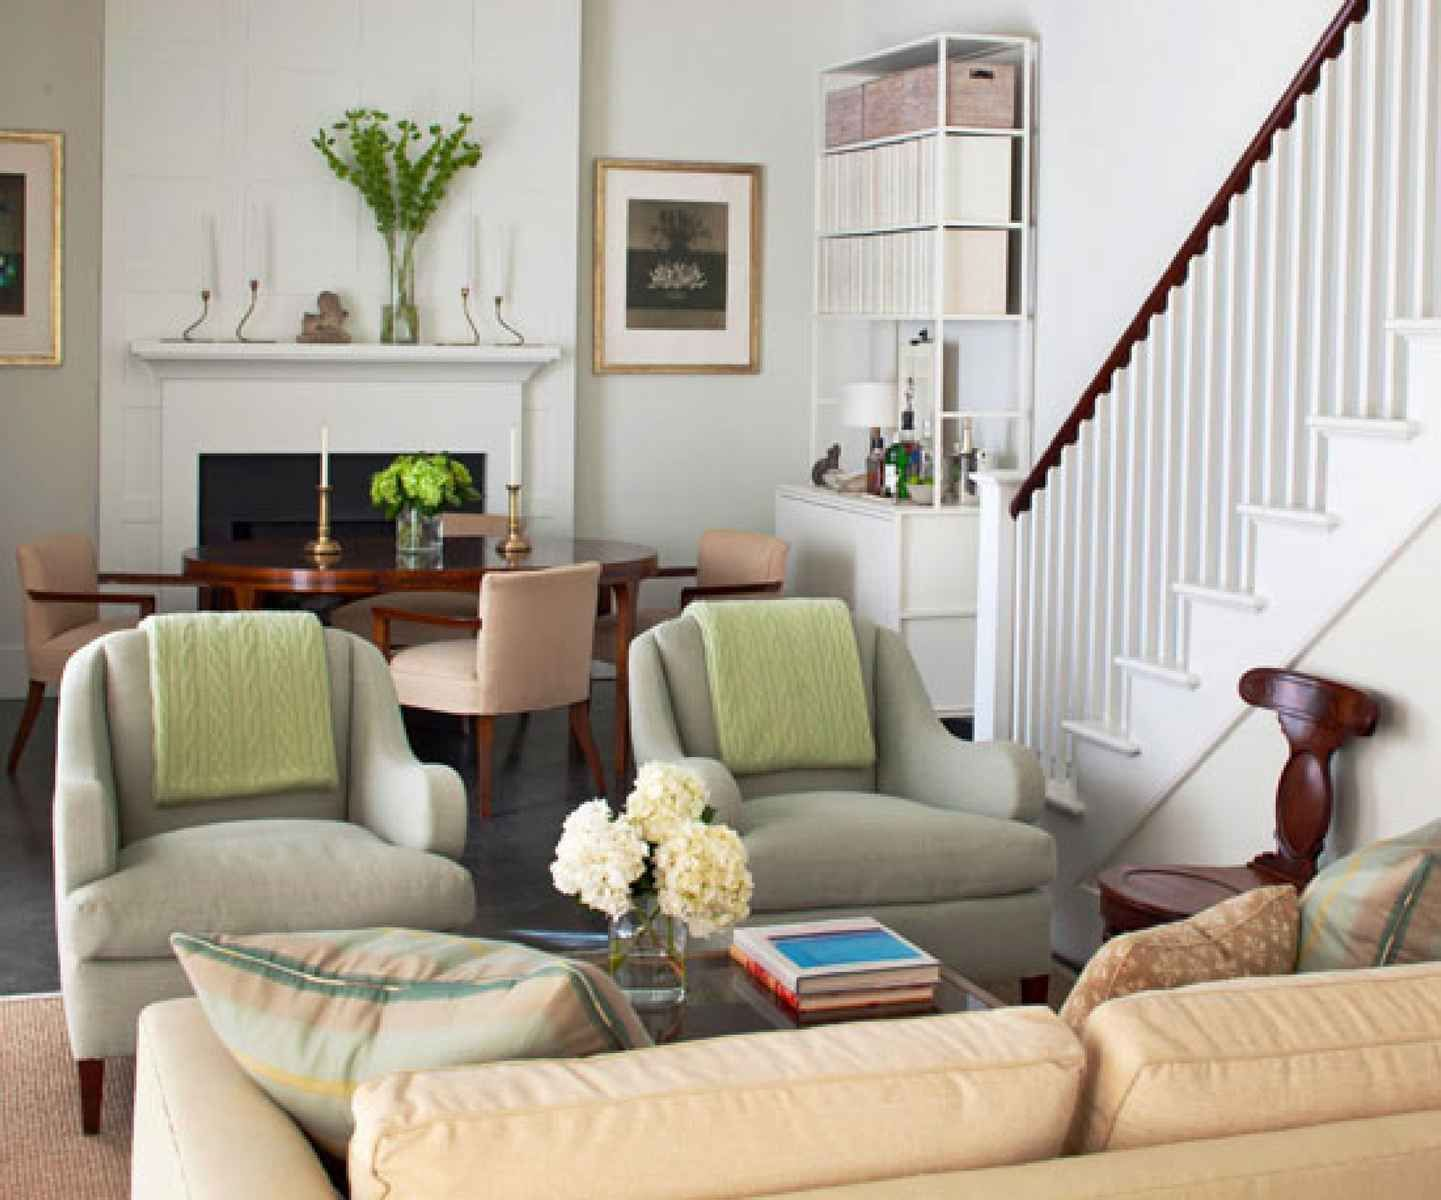 Small Scale Furniture For Living Room Modern Interior Paint Colors Check More At Http Www Freshtalknetwork